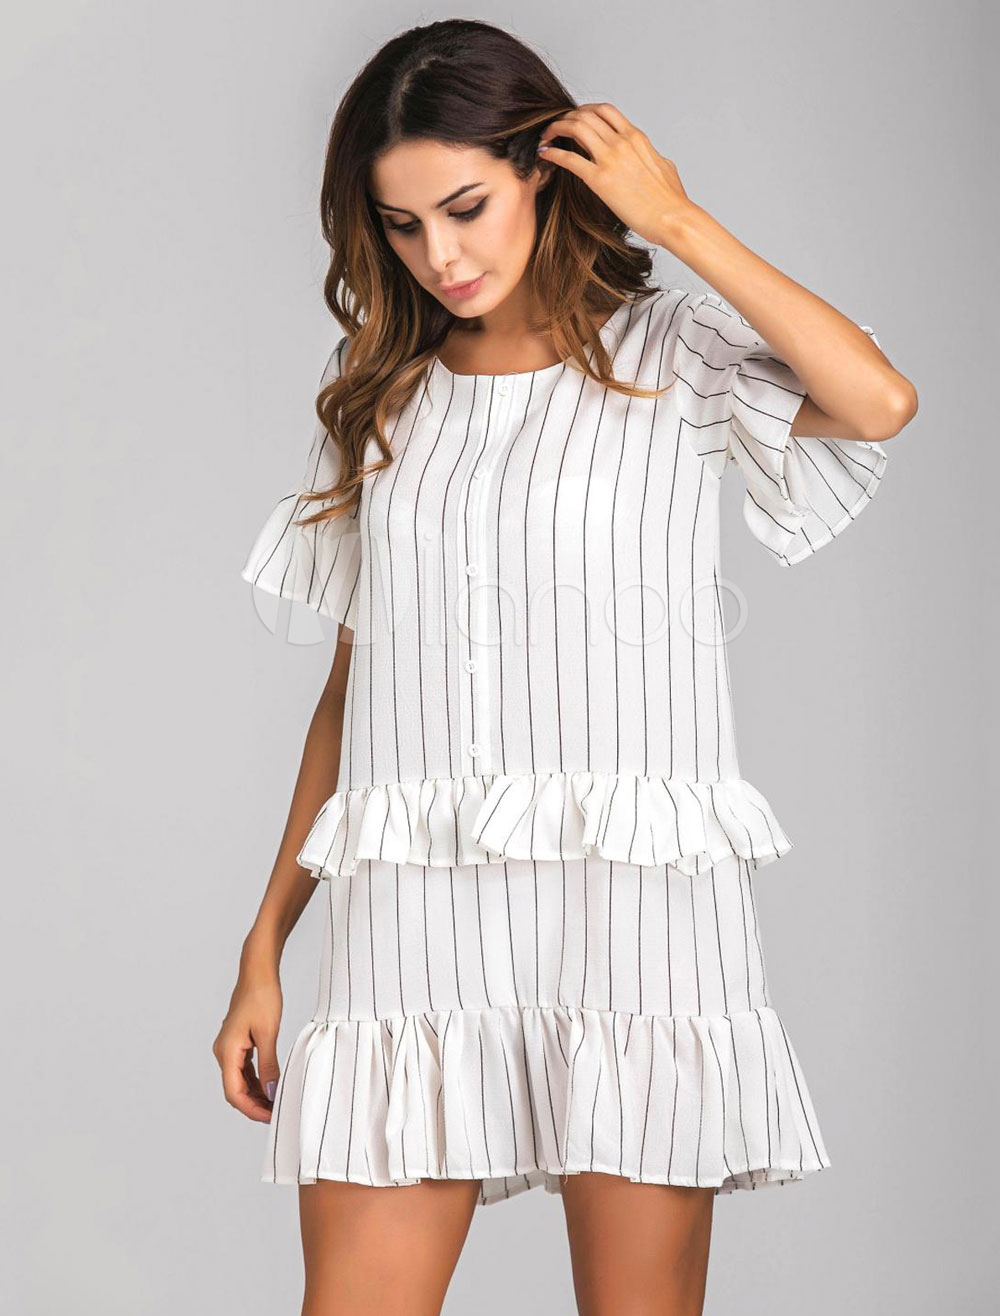 Buy White Shift Dress Round Neck Short Sleeve Ruffles Striped Short Dresses For Women for $23.74 in Milanoo store